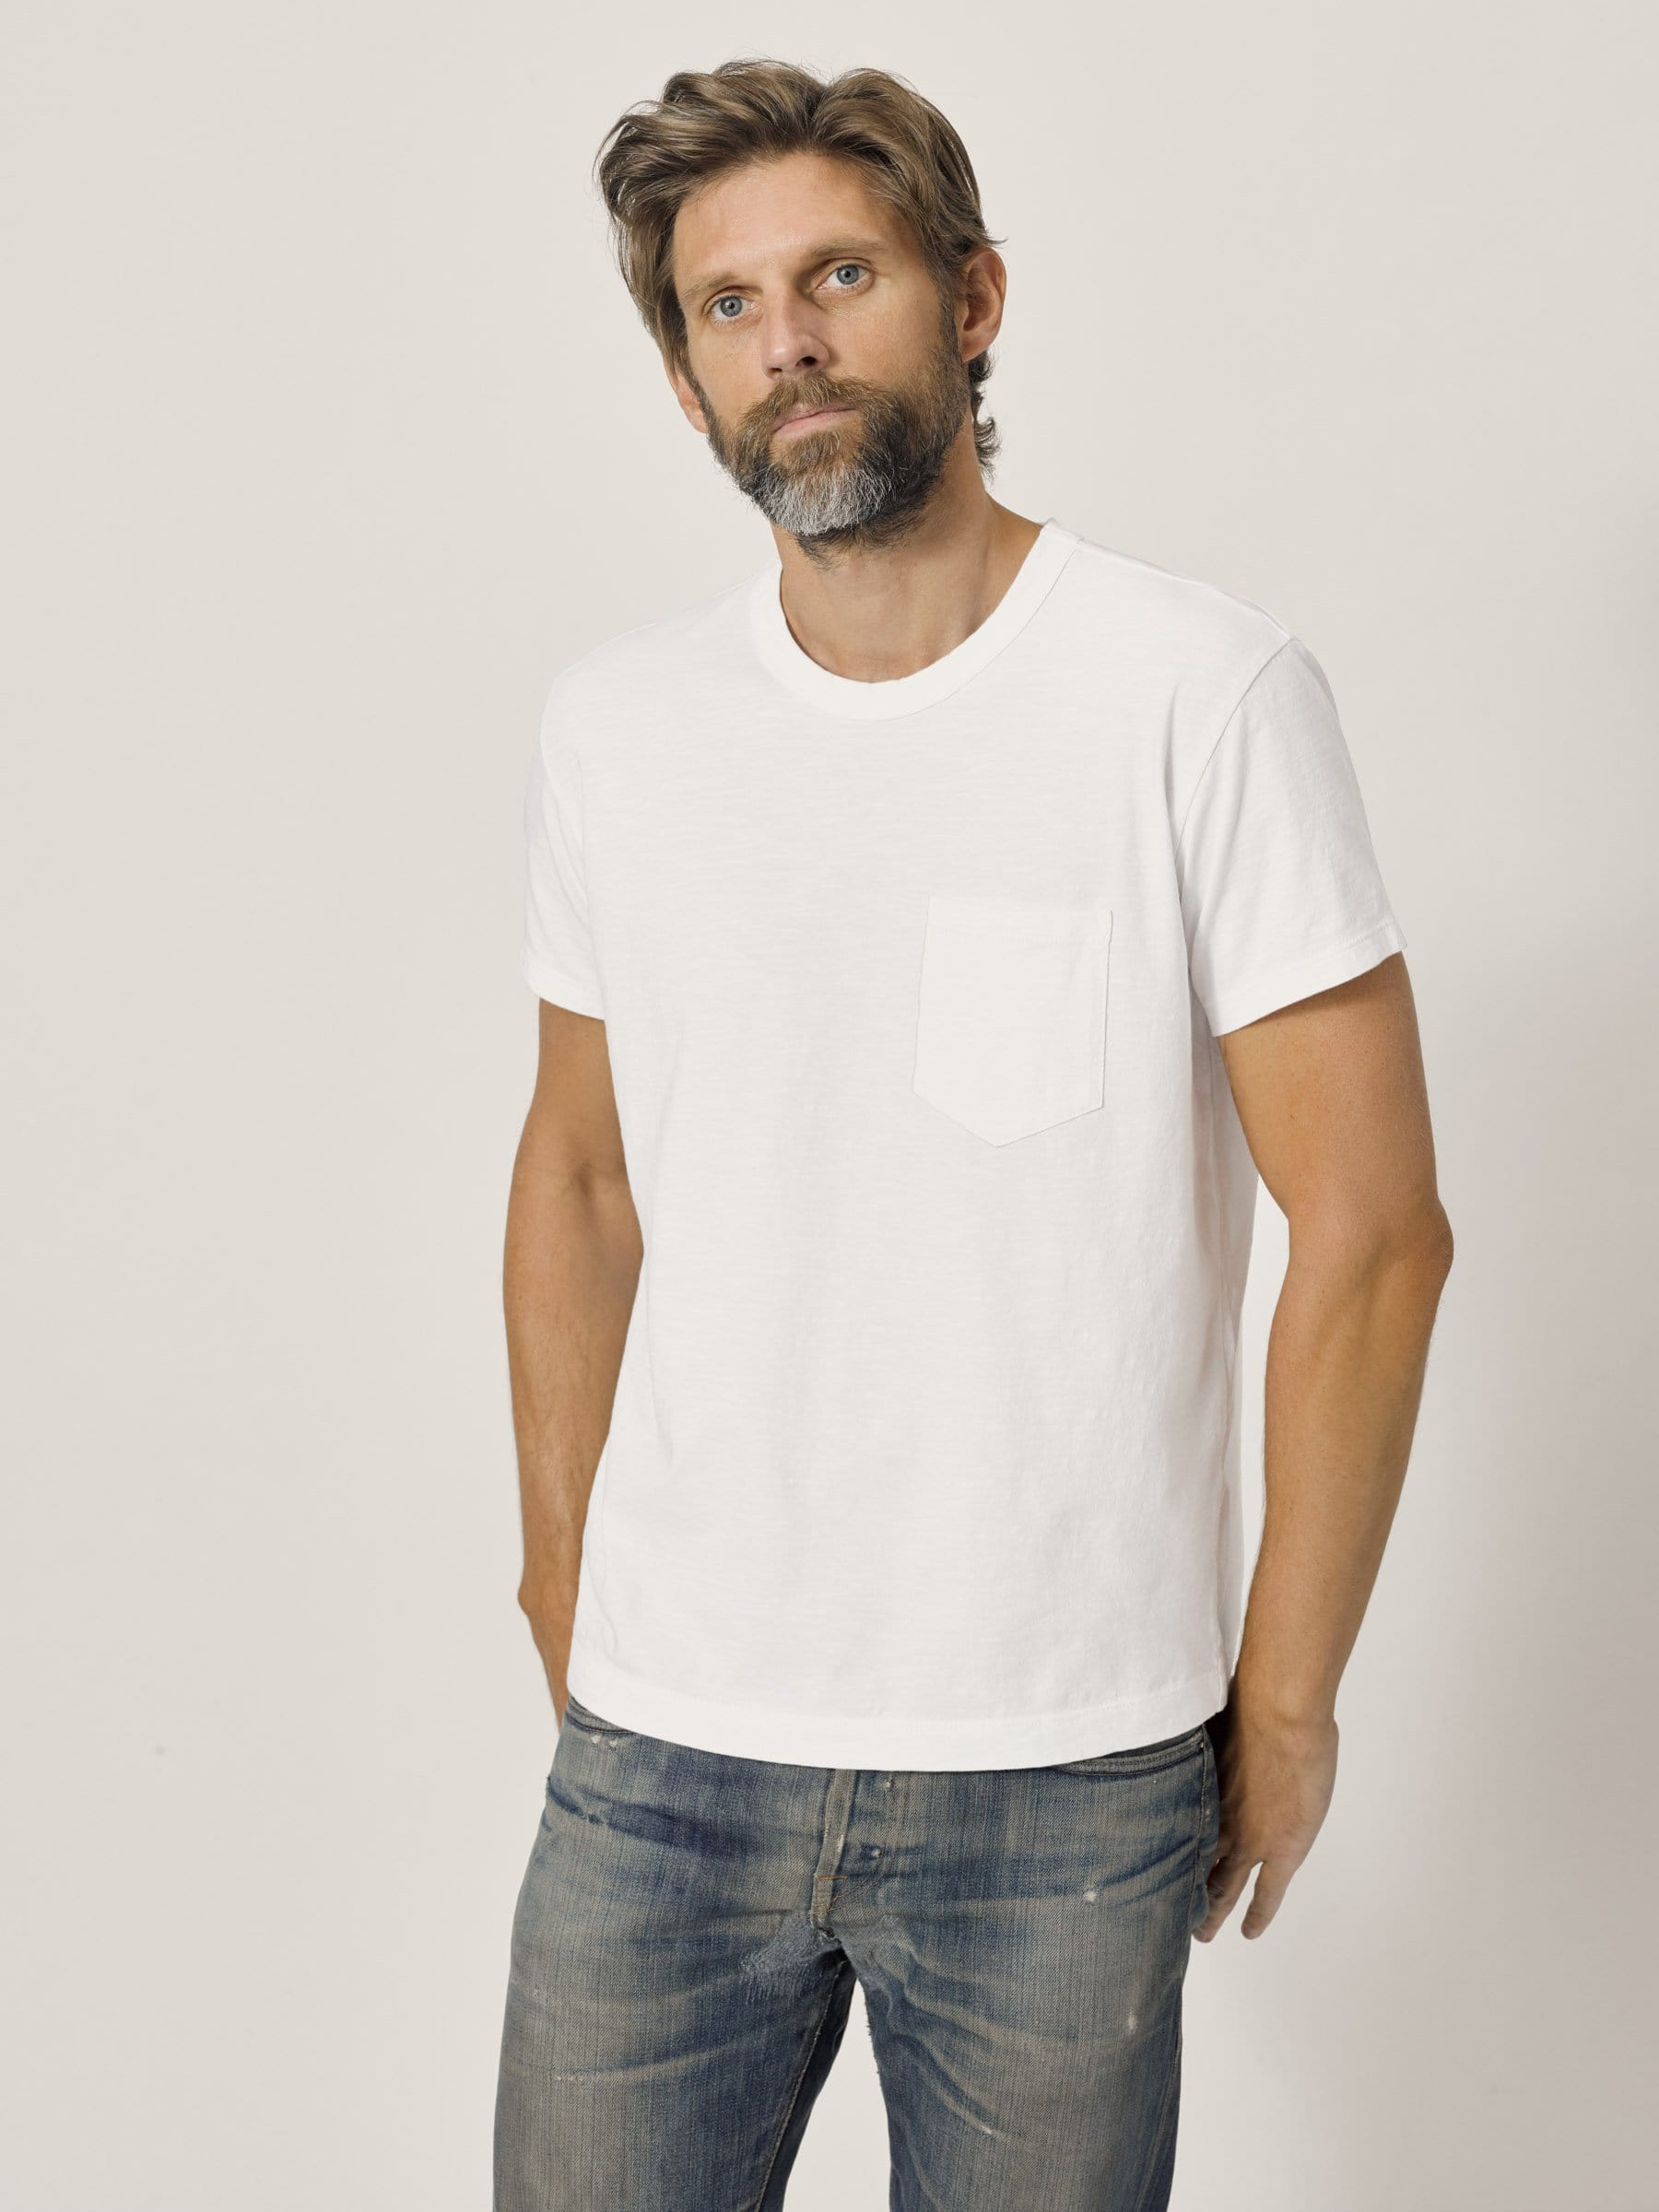 Buck Mason pocket T-shirt